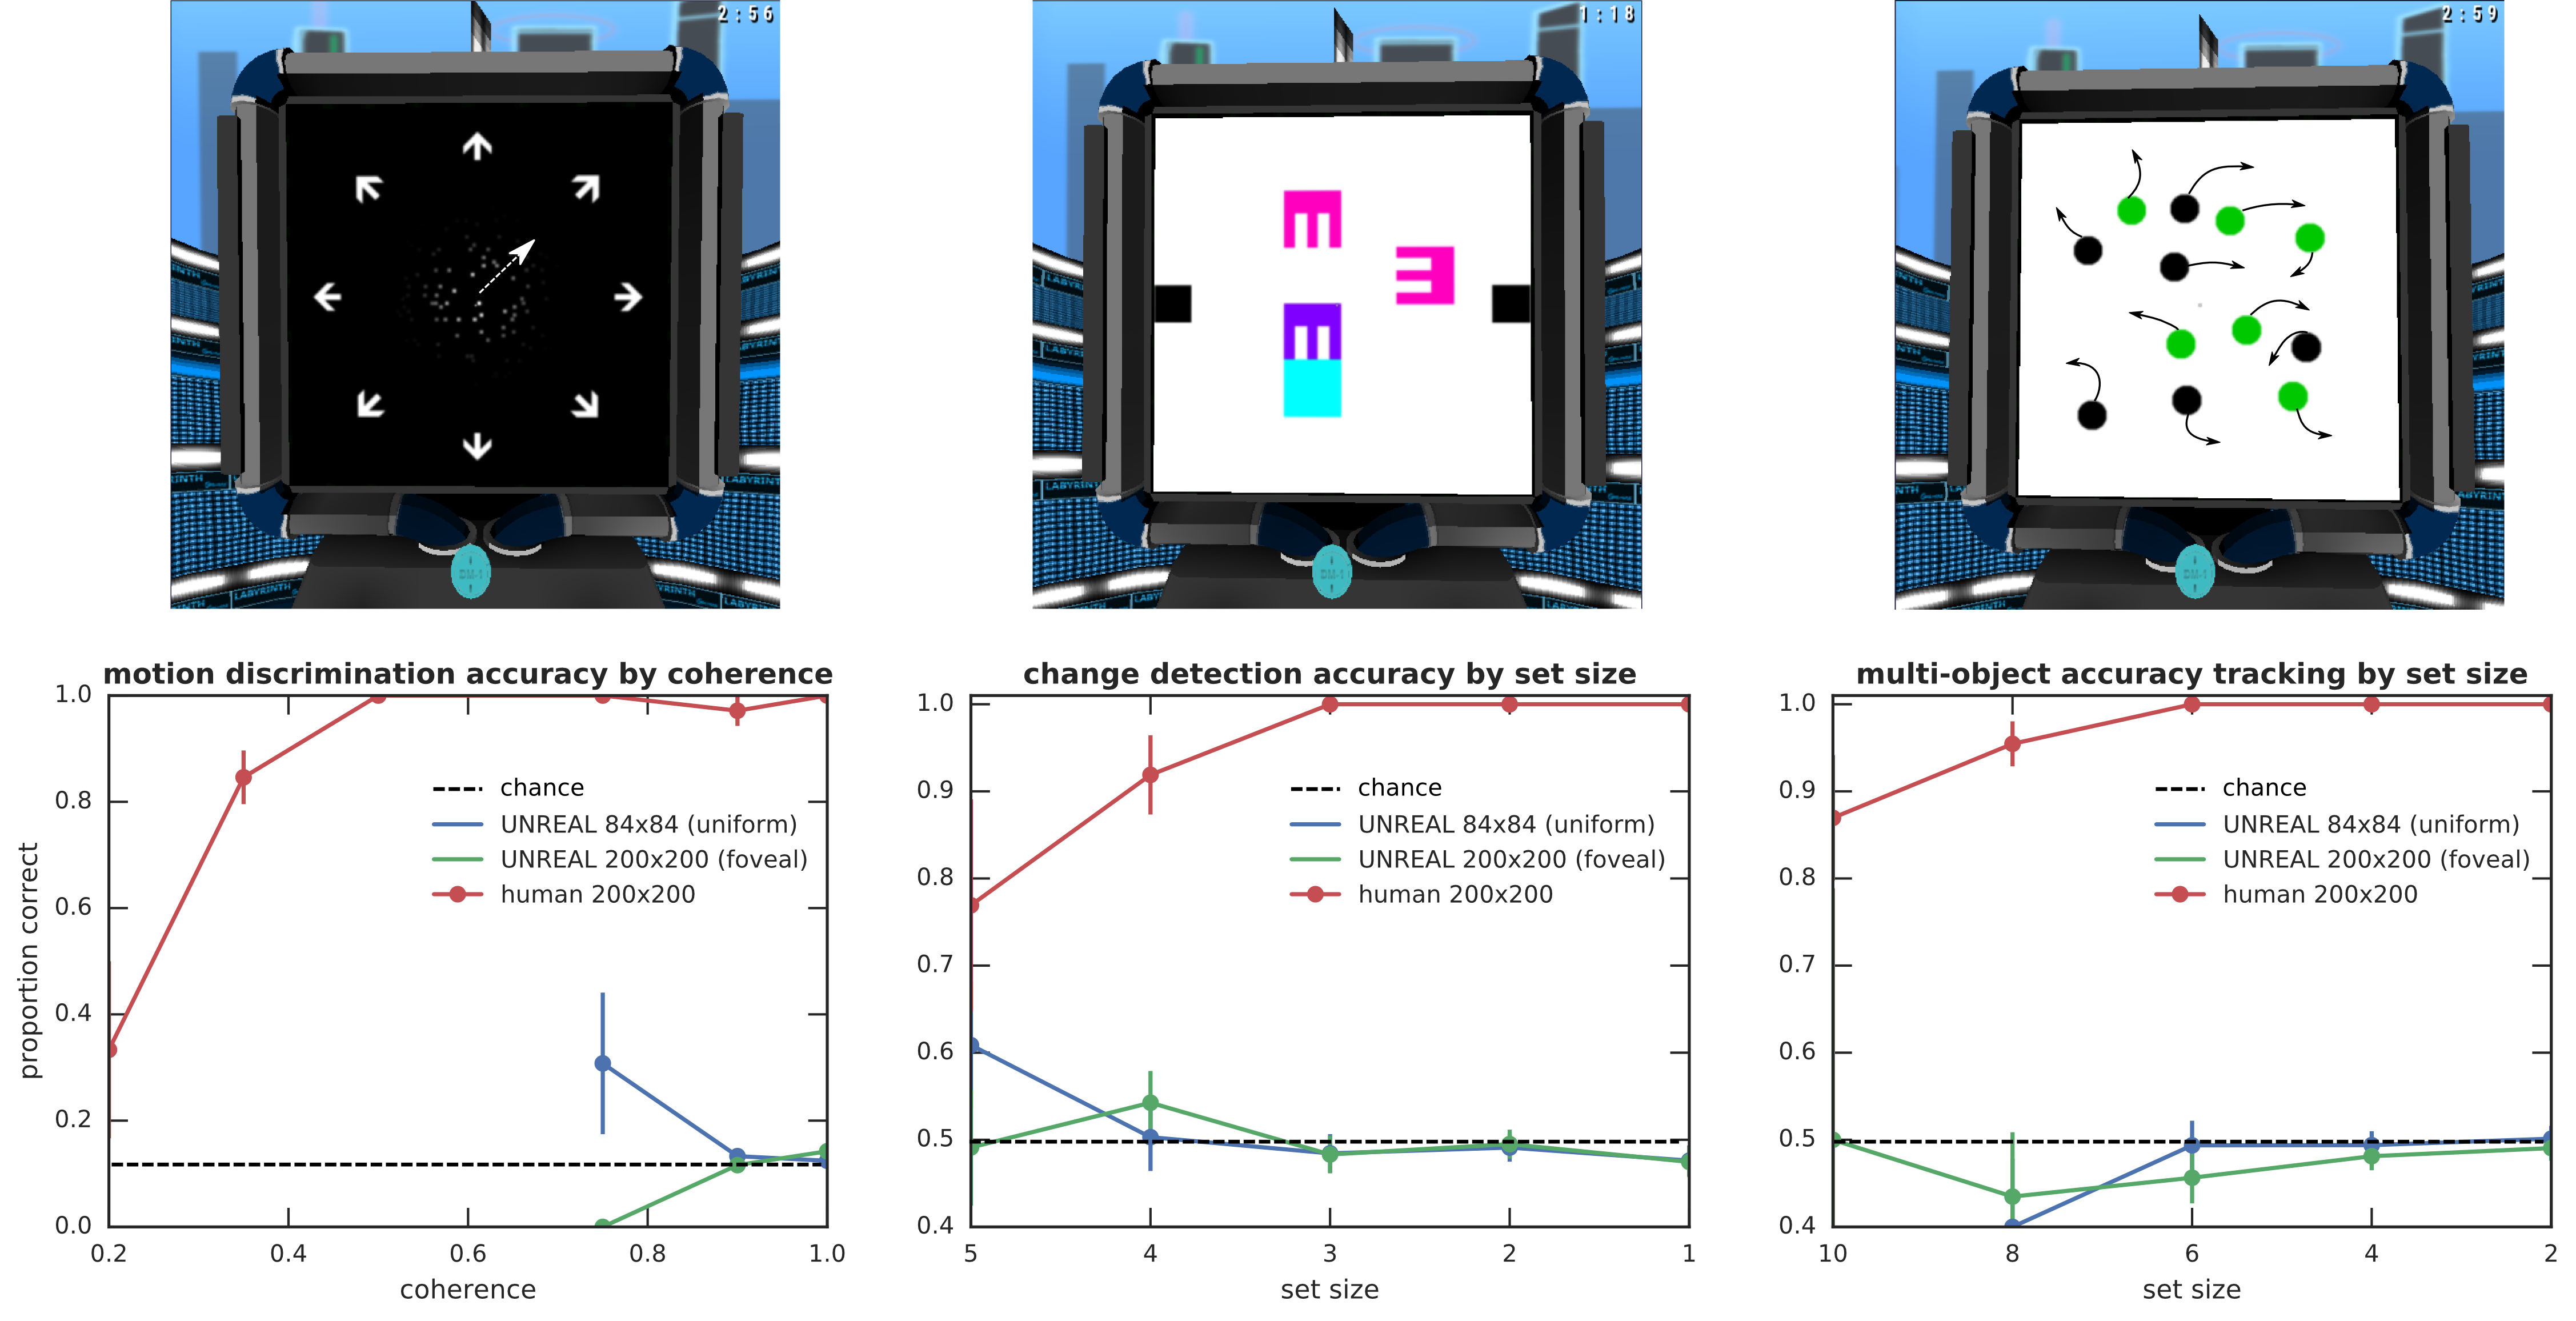 Psychometric functions comparing human and UNREAL on motion discrimination, change detection, and multiple object tracking tasks. UNREAL is not able to perform these tasks, performing at chance levels under all settings.